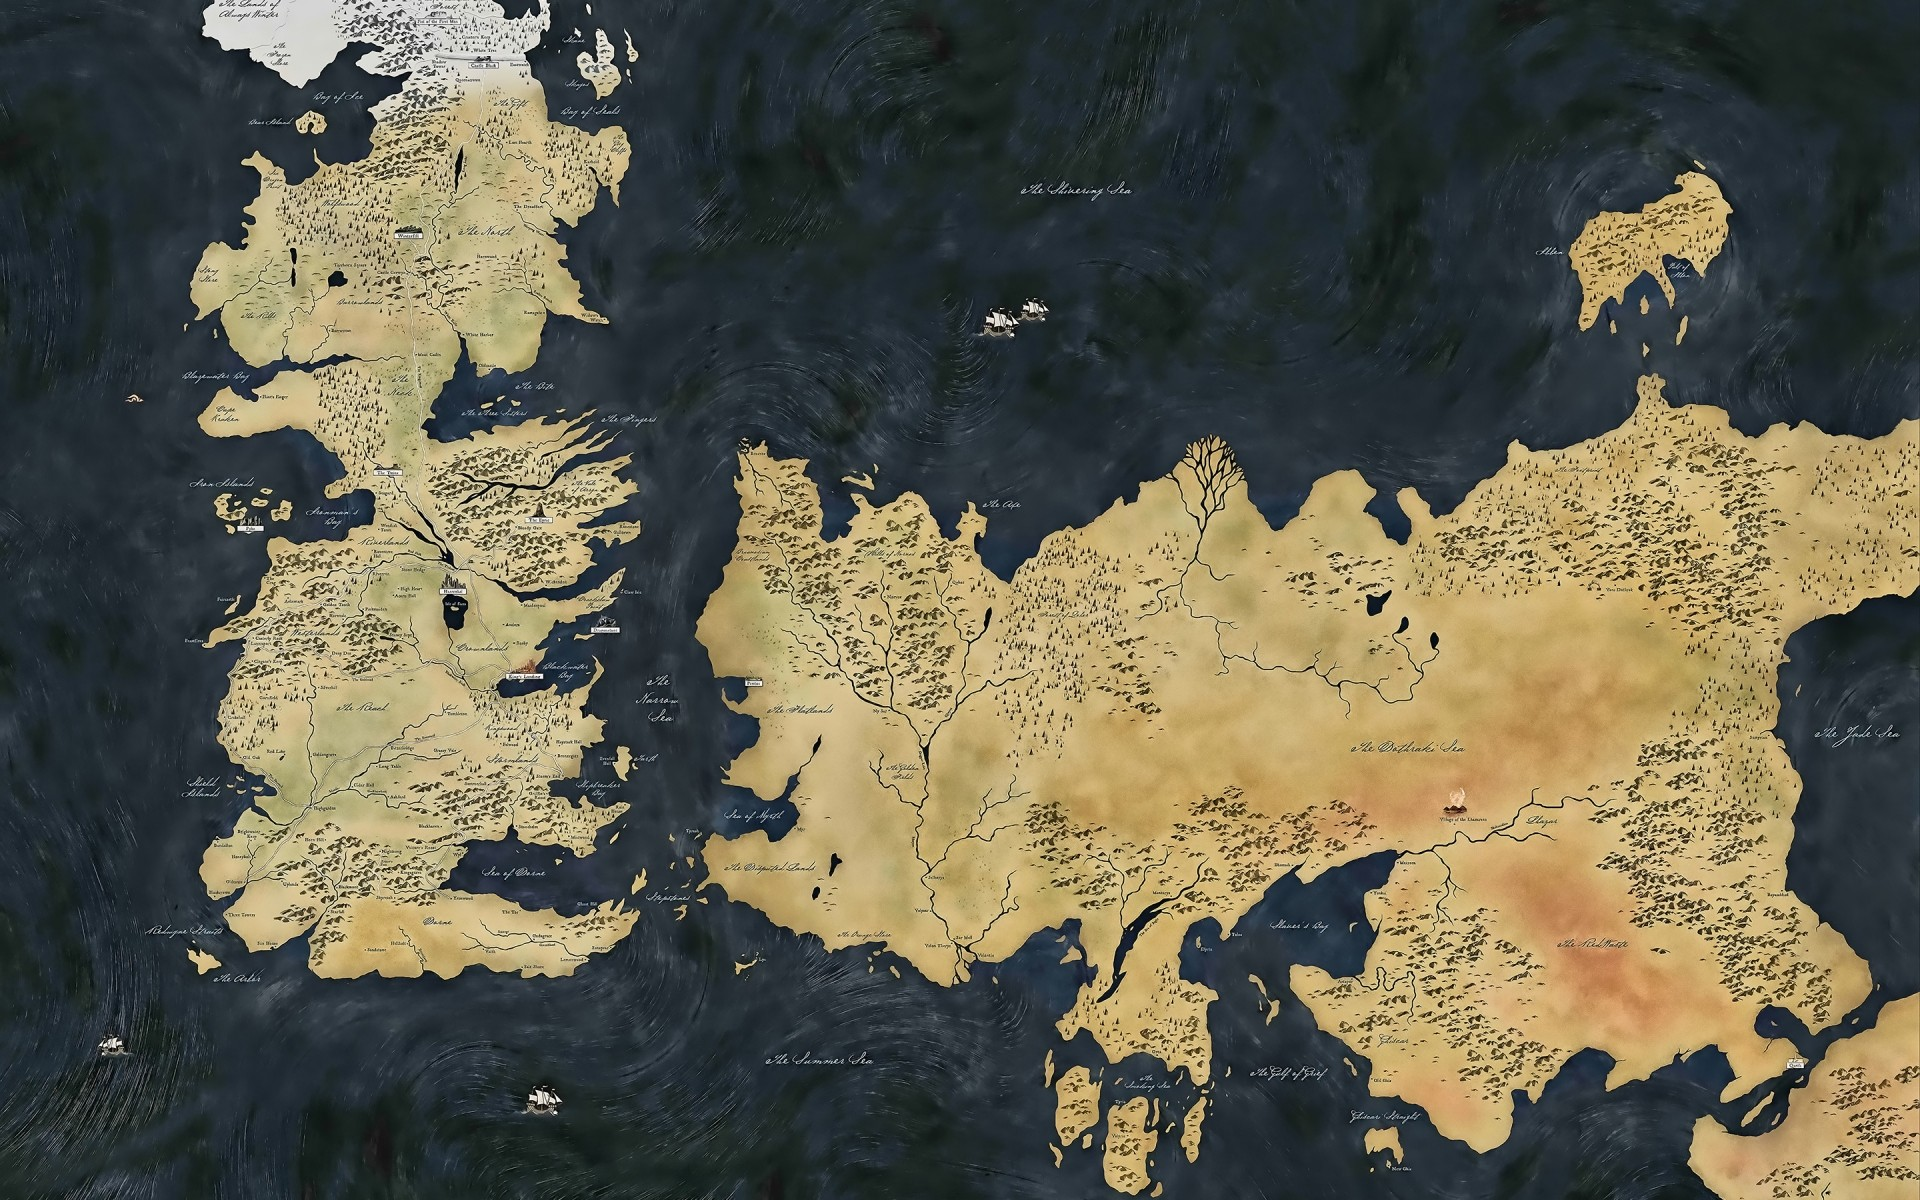 Map game of thrones iphone wallpapers for free gumiabroncs Choice Image